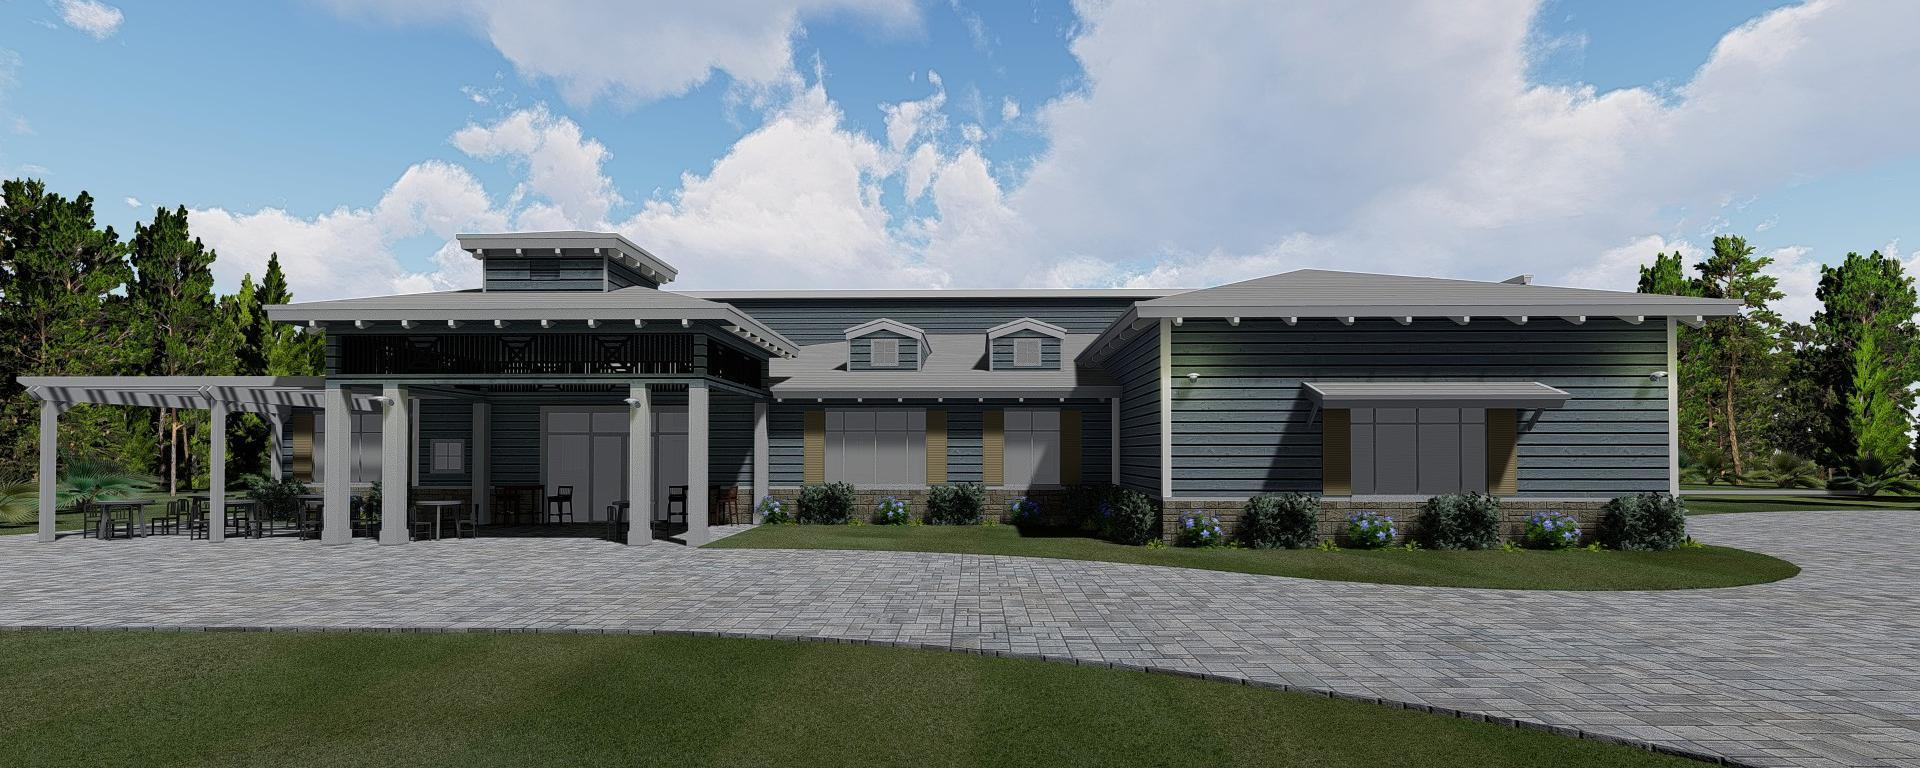 Rendering of the front view of the proposed club house